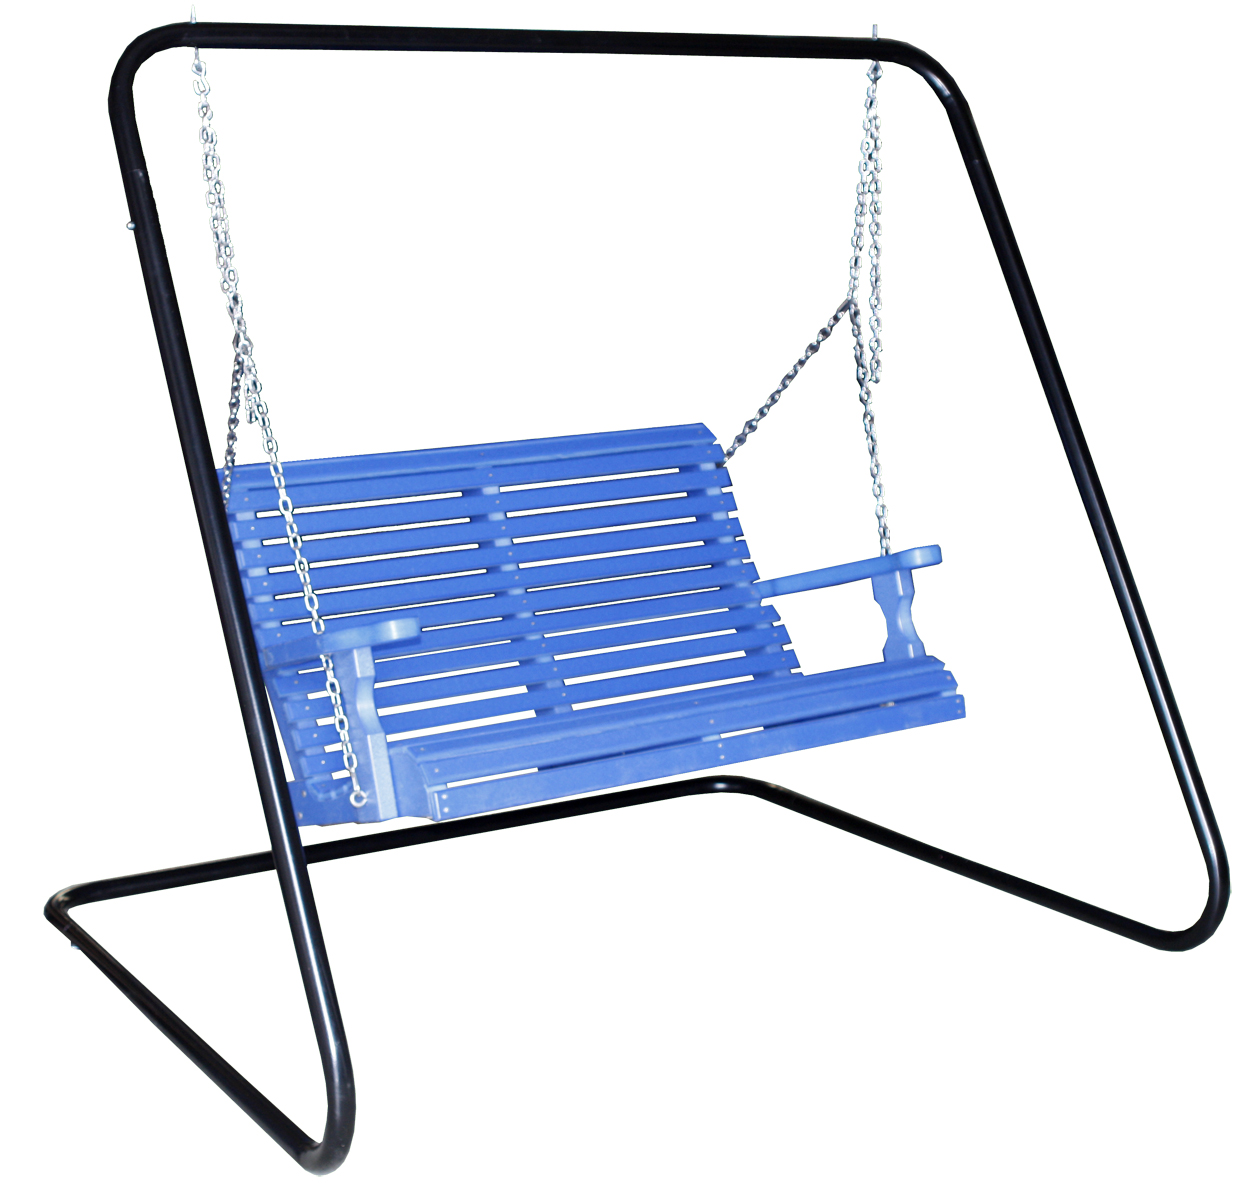 creekside 4 foot rollback porch swing rb85 and metal swing frame maf80 - Metal Swing Frame